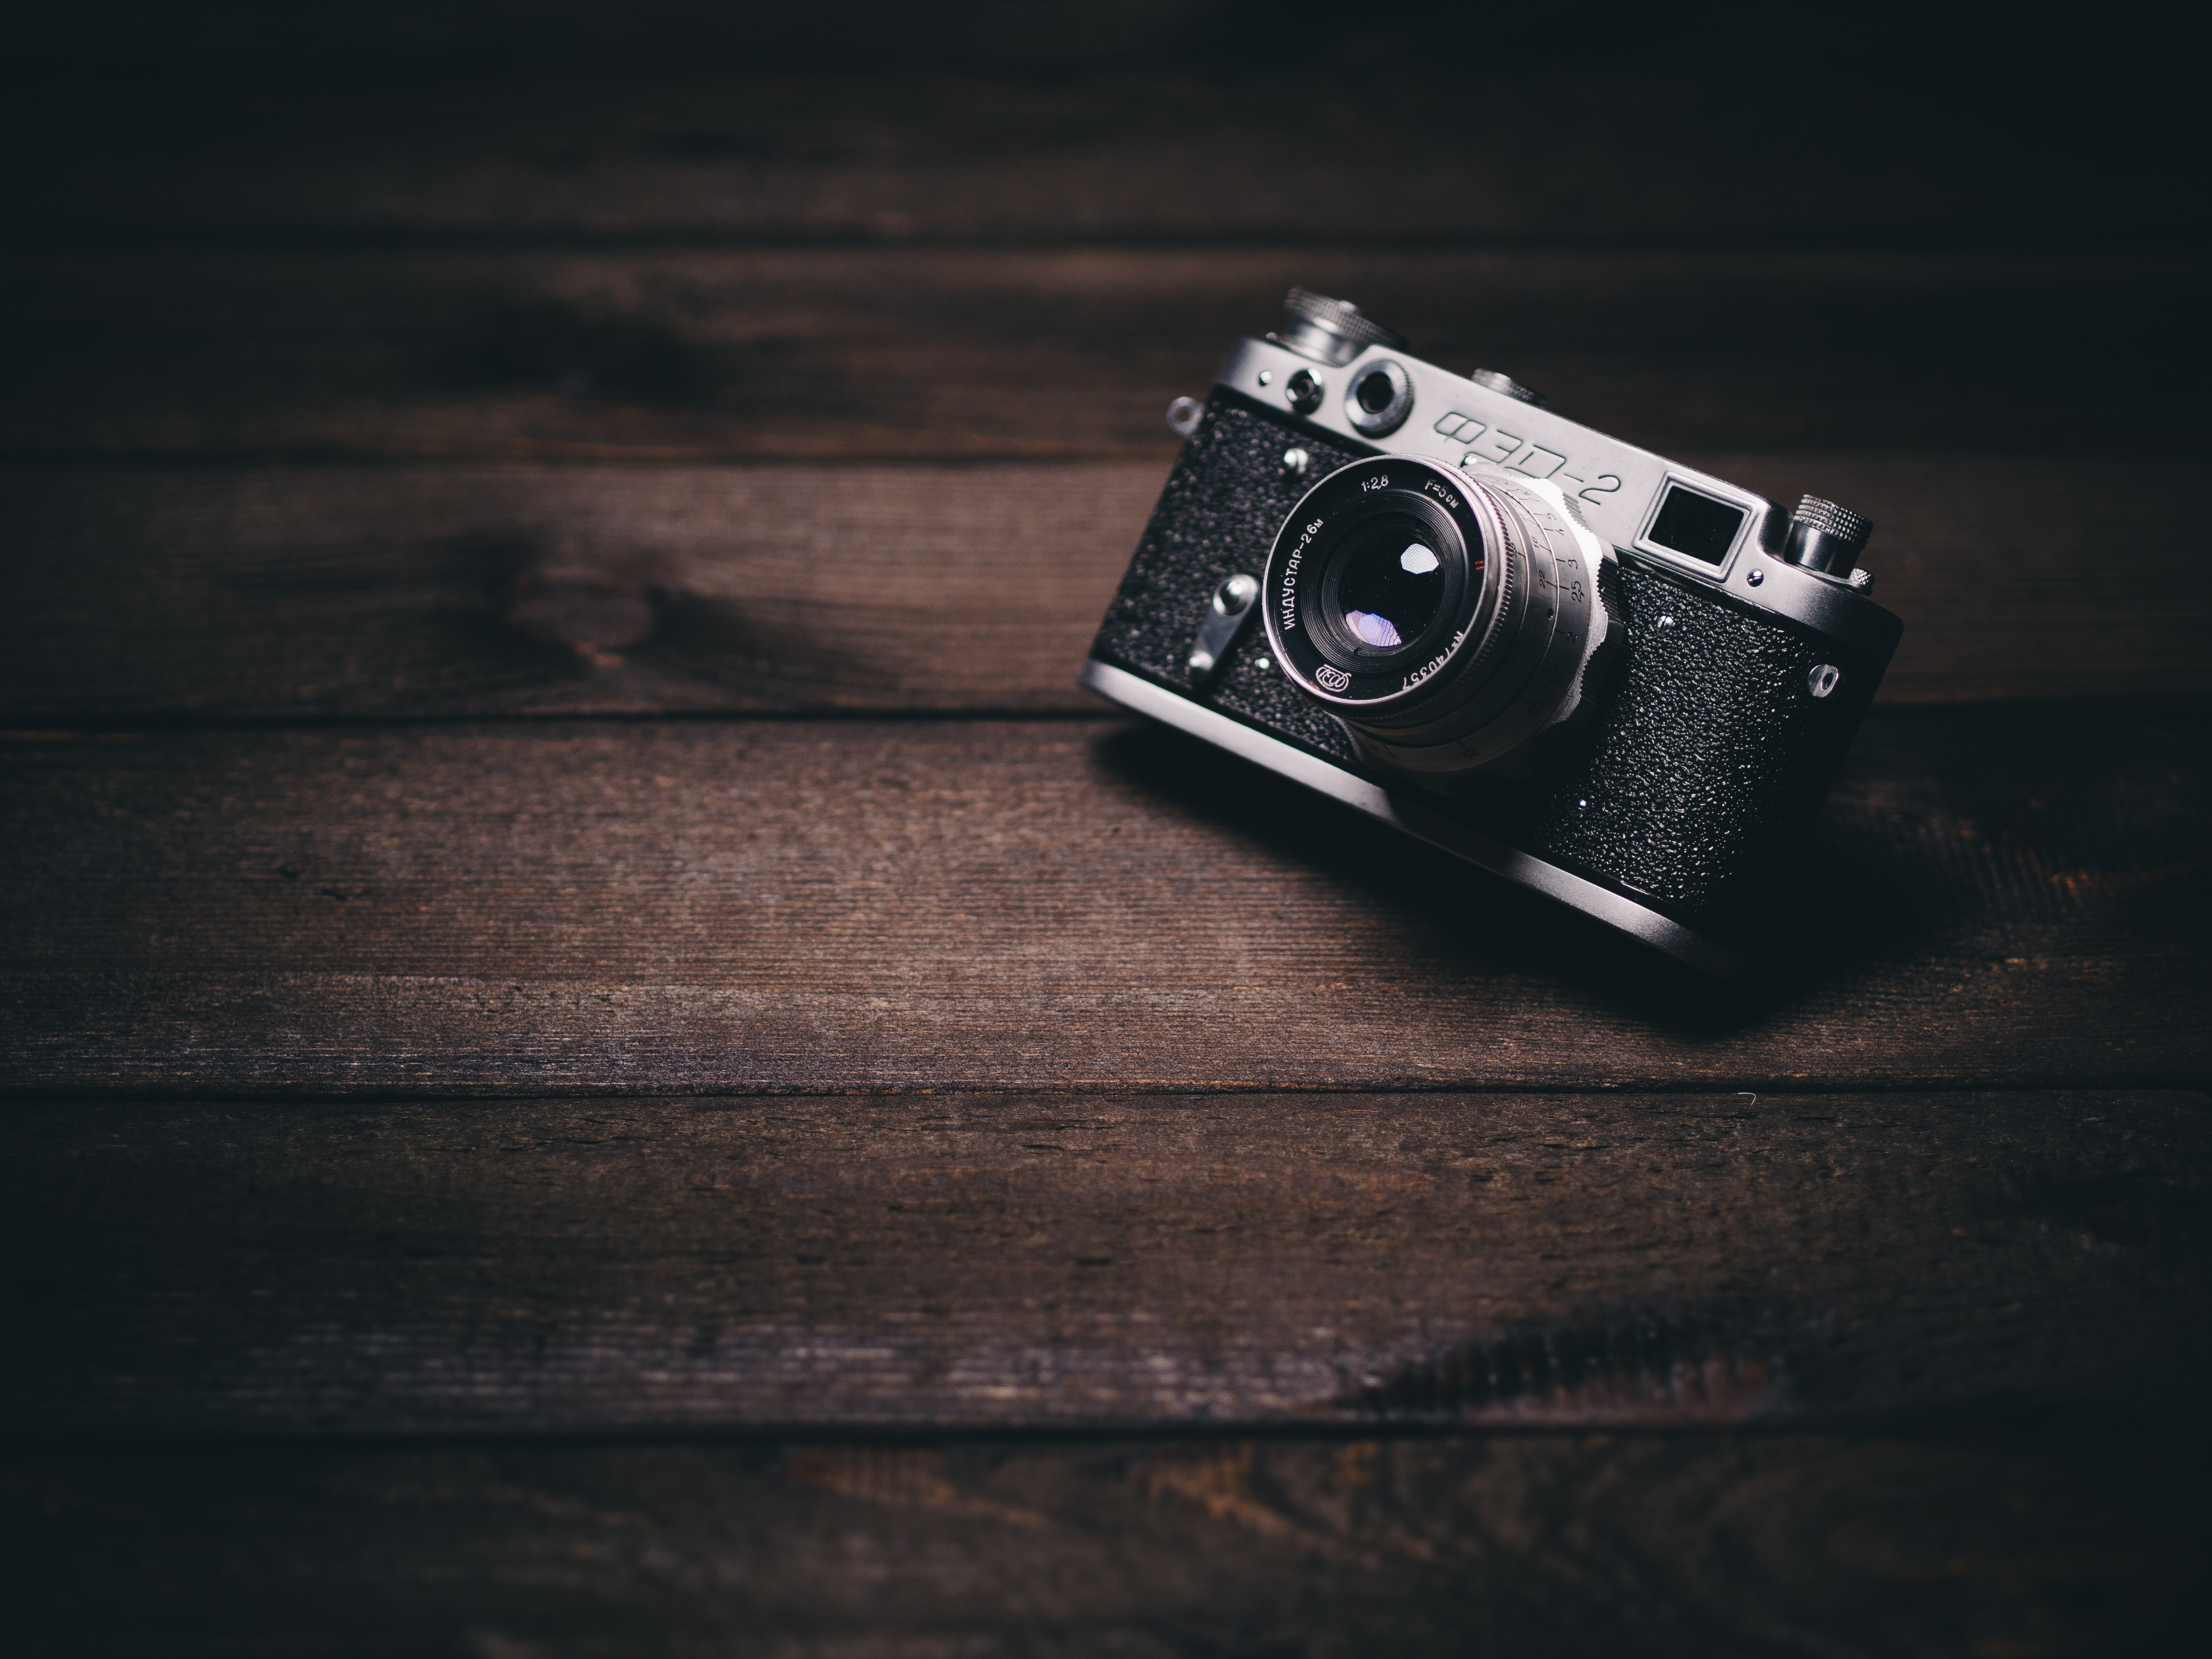 135633 download wallpaper Technologies, Technology, Camera, Lens, Vintage, Retro, Shadow, Planks, Board, Wood, Wooden screensavers and pictures for free